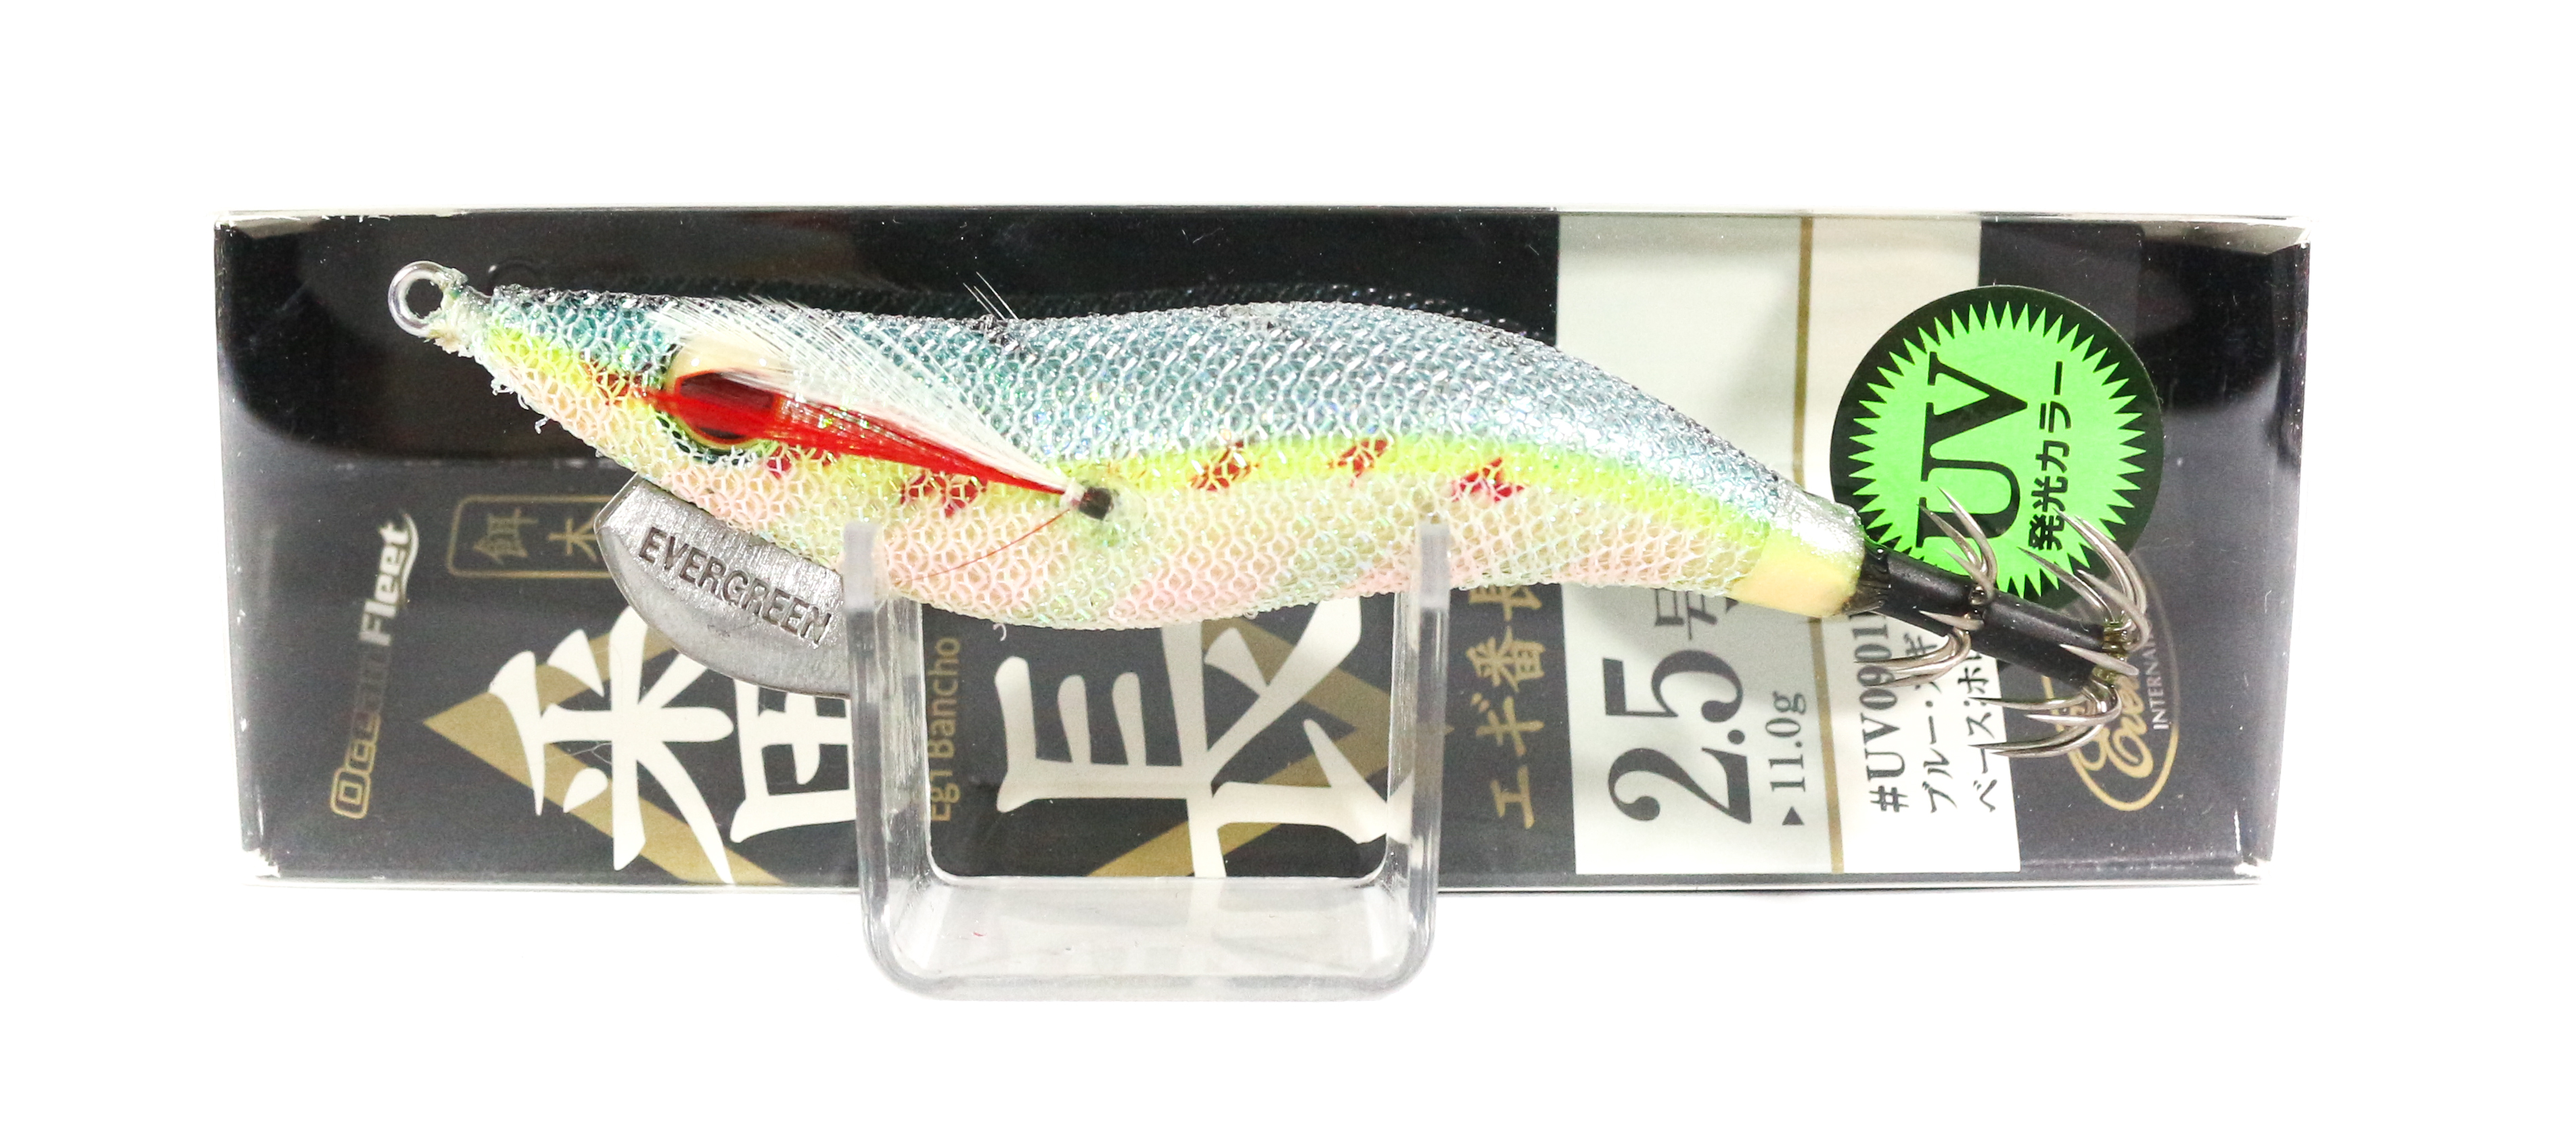 Evergreen Ocean Fleet Custom Squid Jig Lure 2.5 UV0901HG (9520)